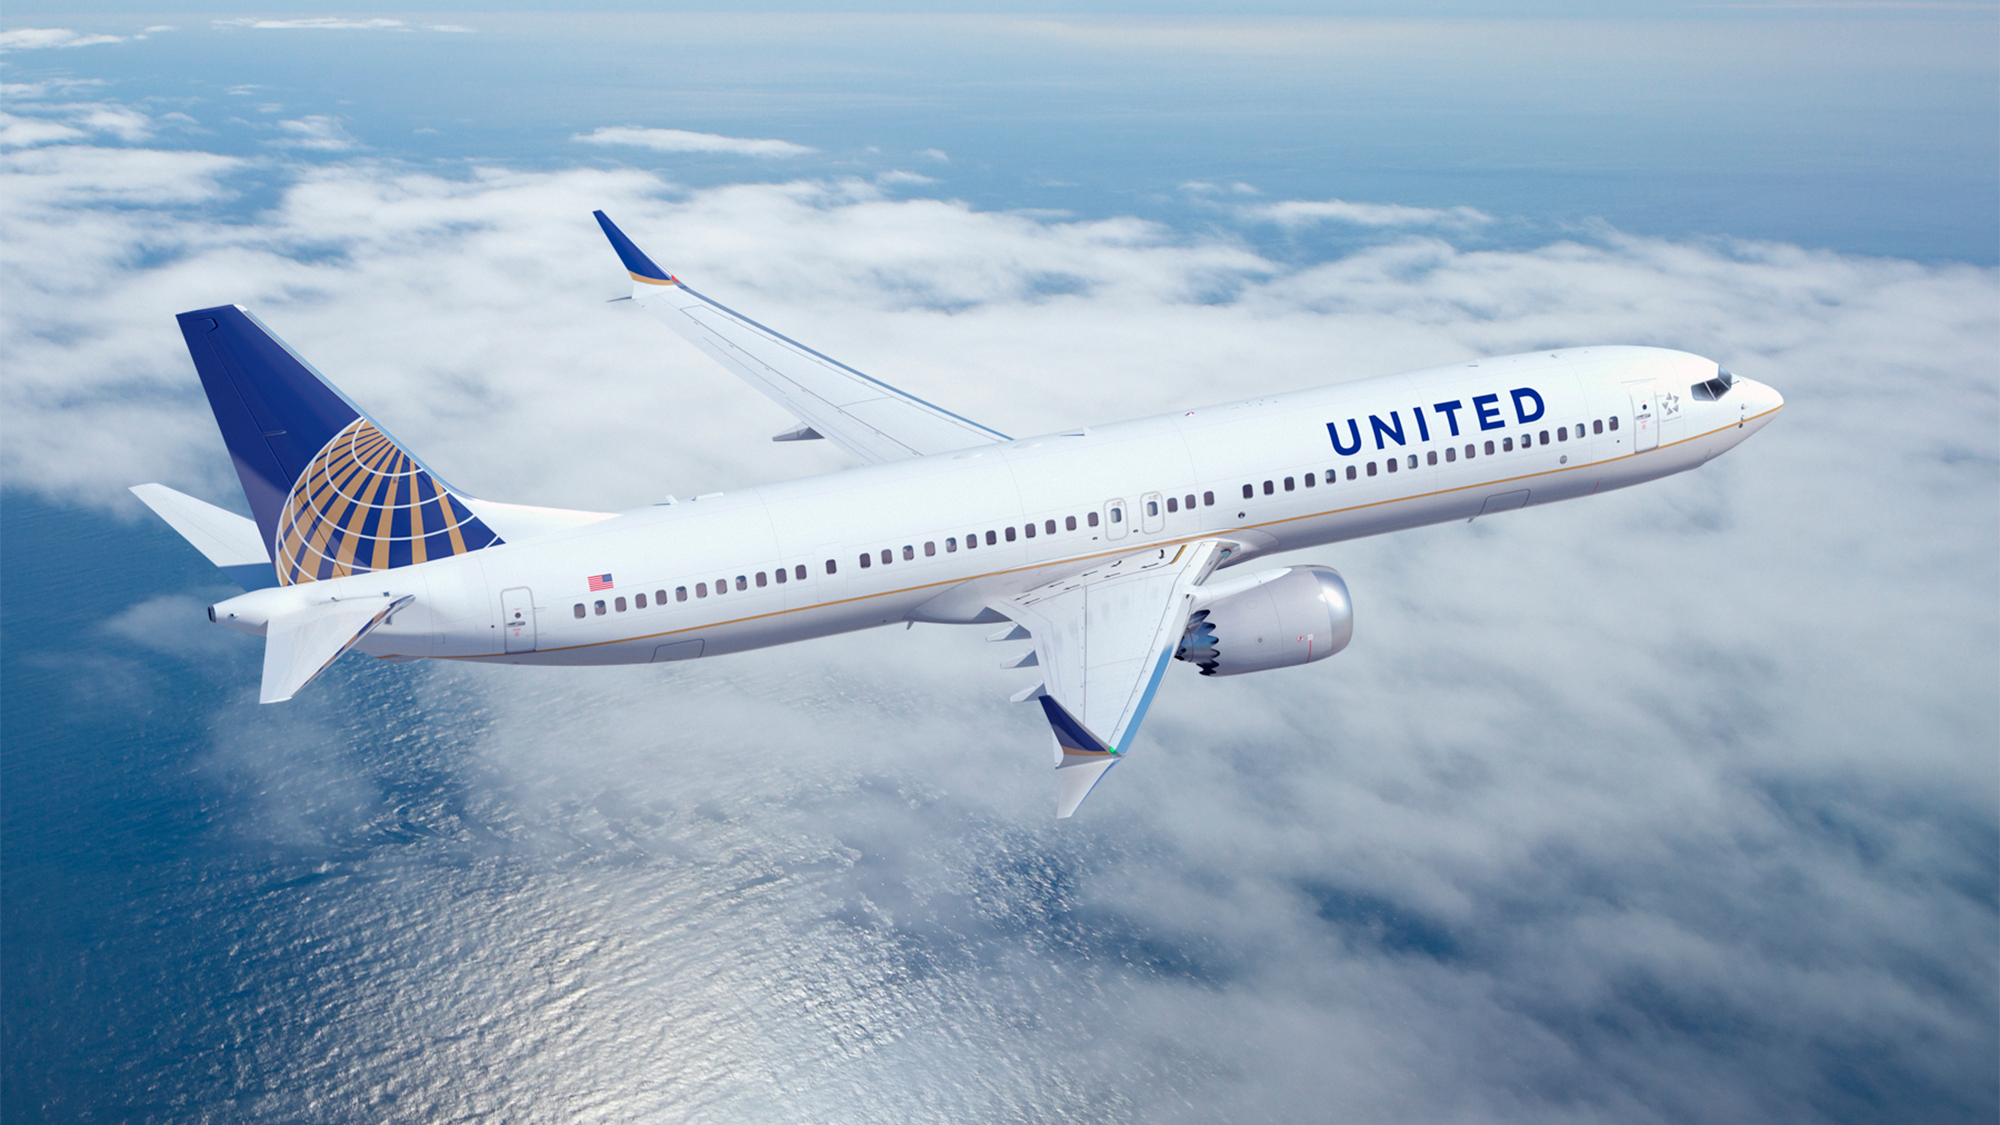 United staying course: No carry-on bags for basic economy